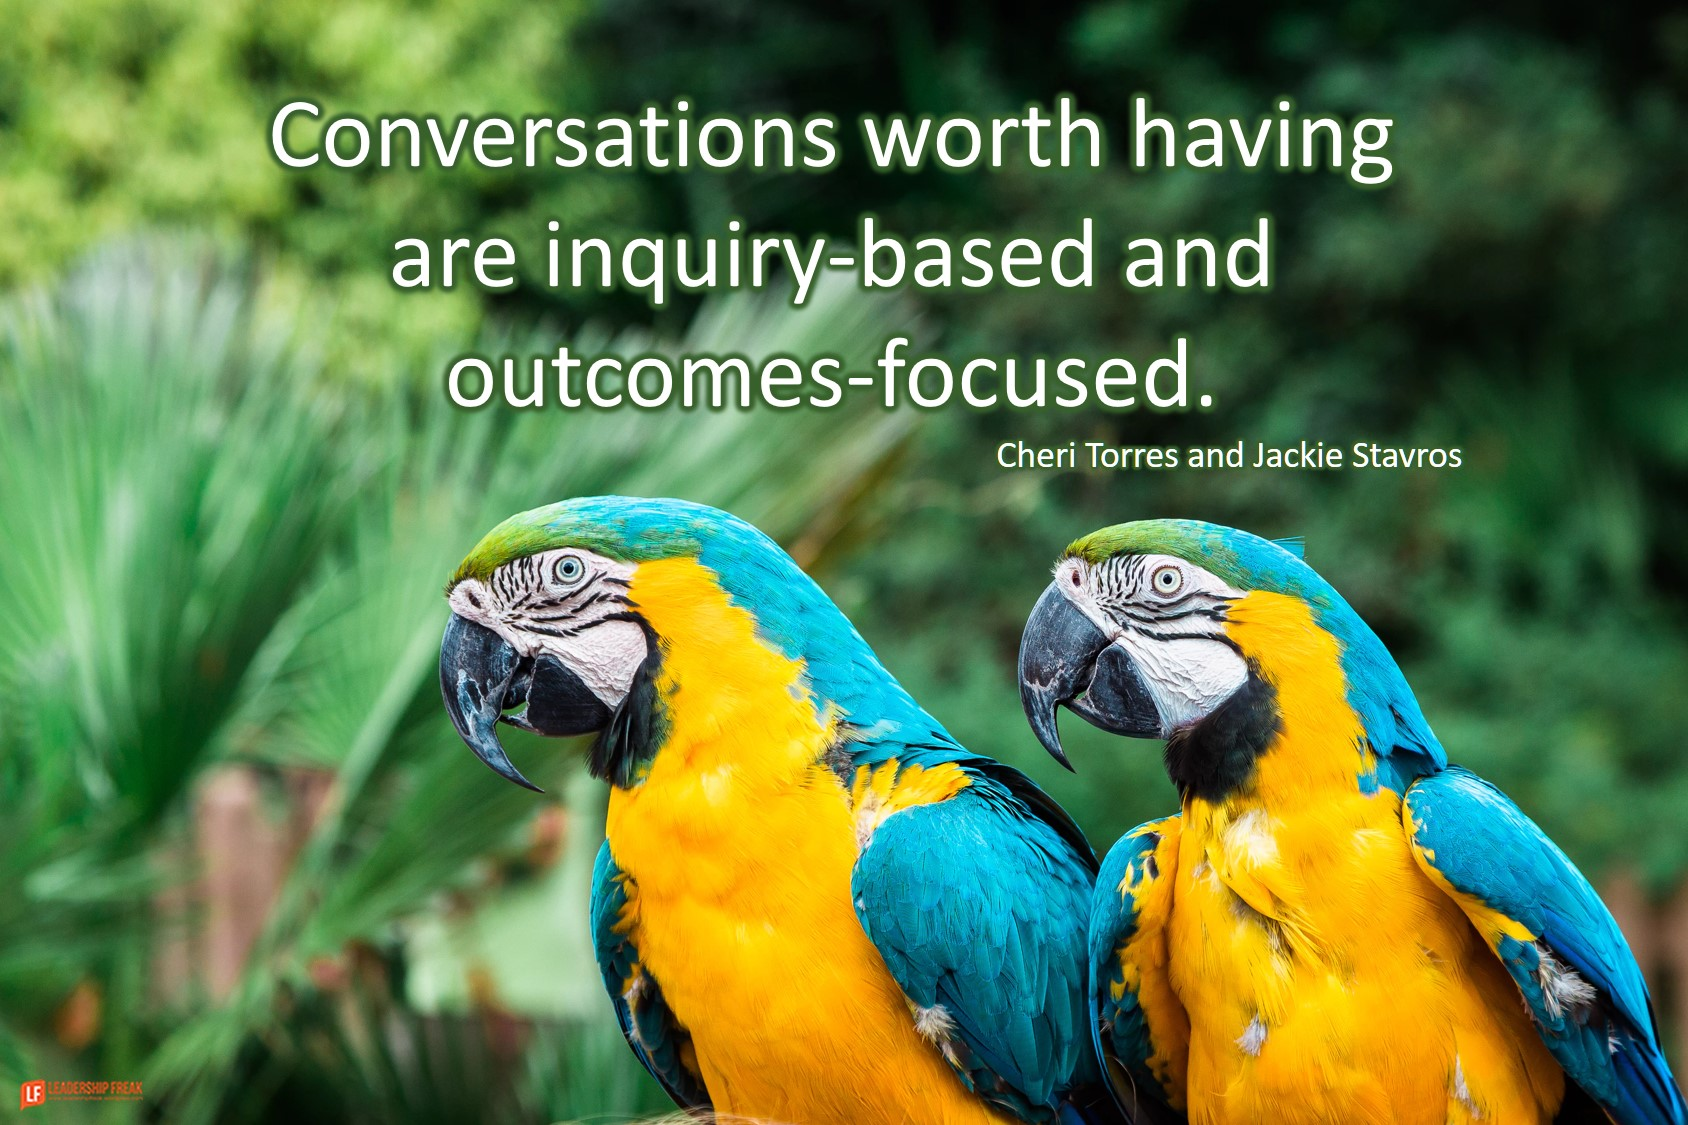 Two Practices to Foster Conversations Worth Having